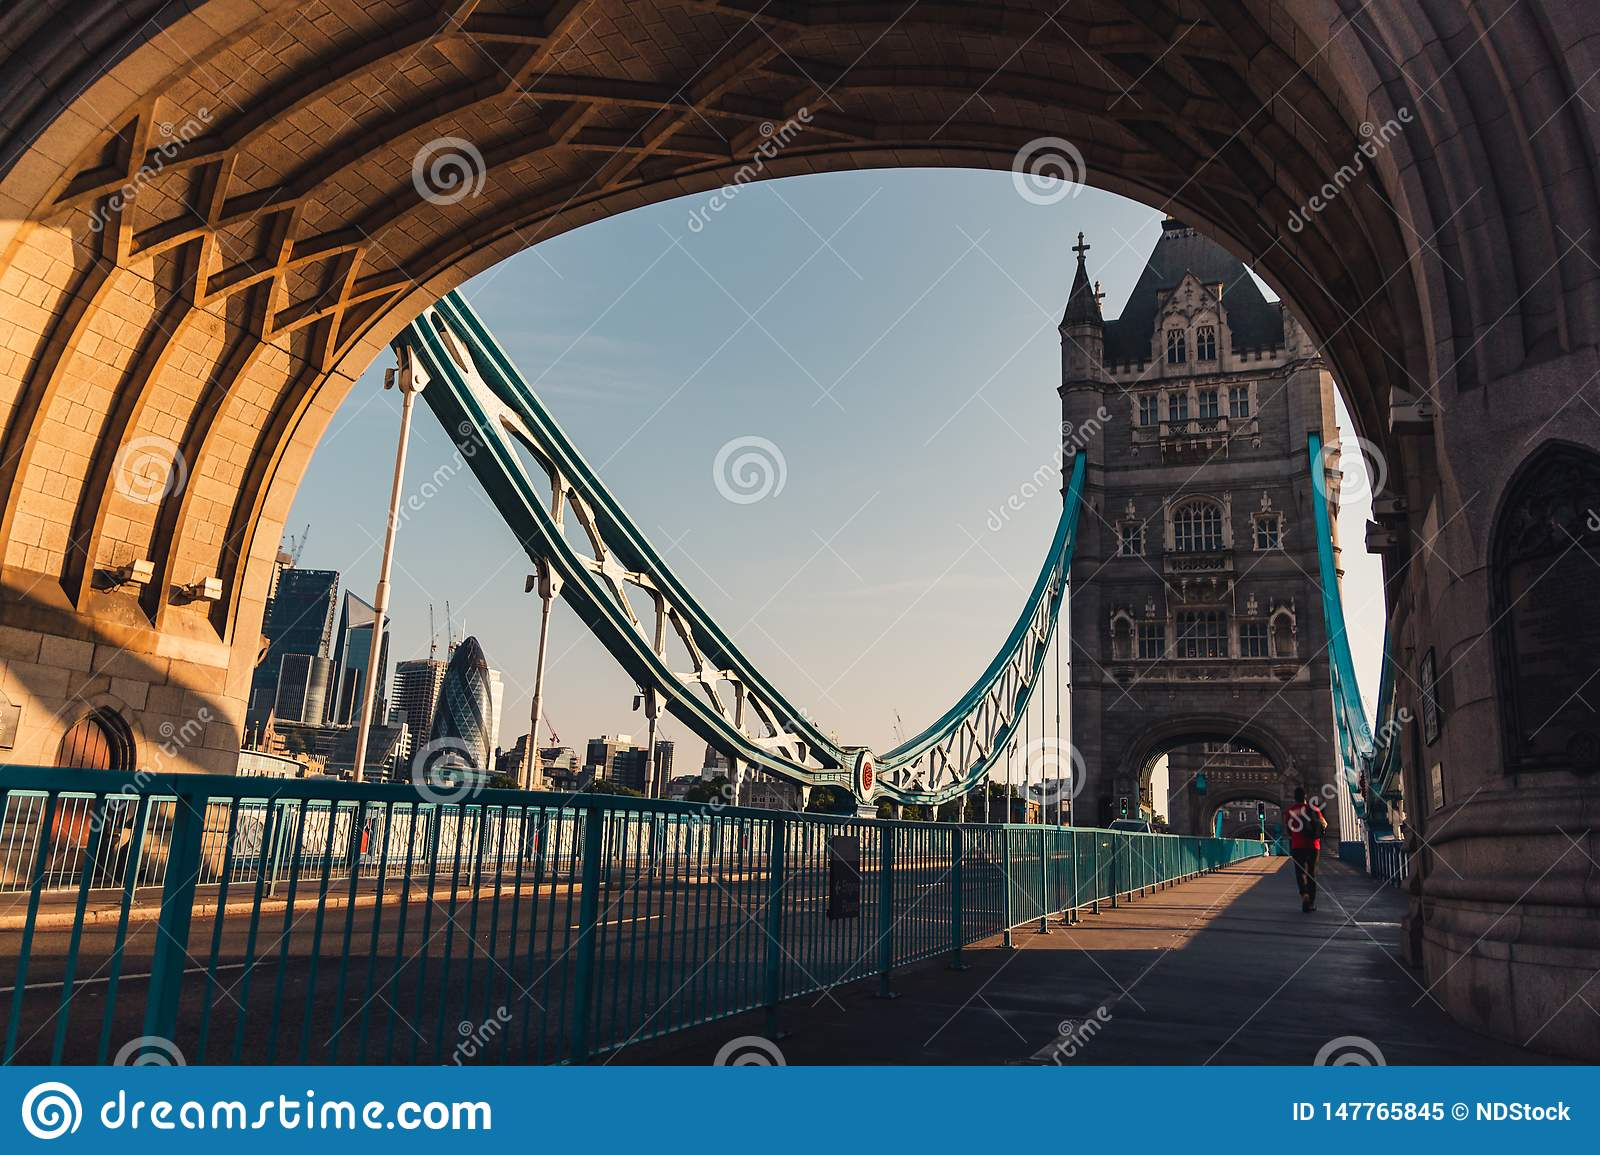 Sunrise on the tower bridge in london, picture from the sidewalk of the drawbridge